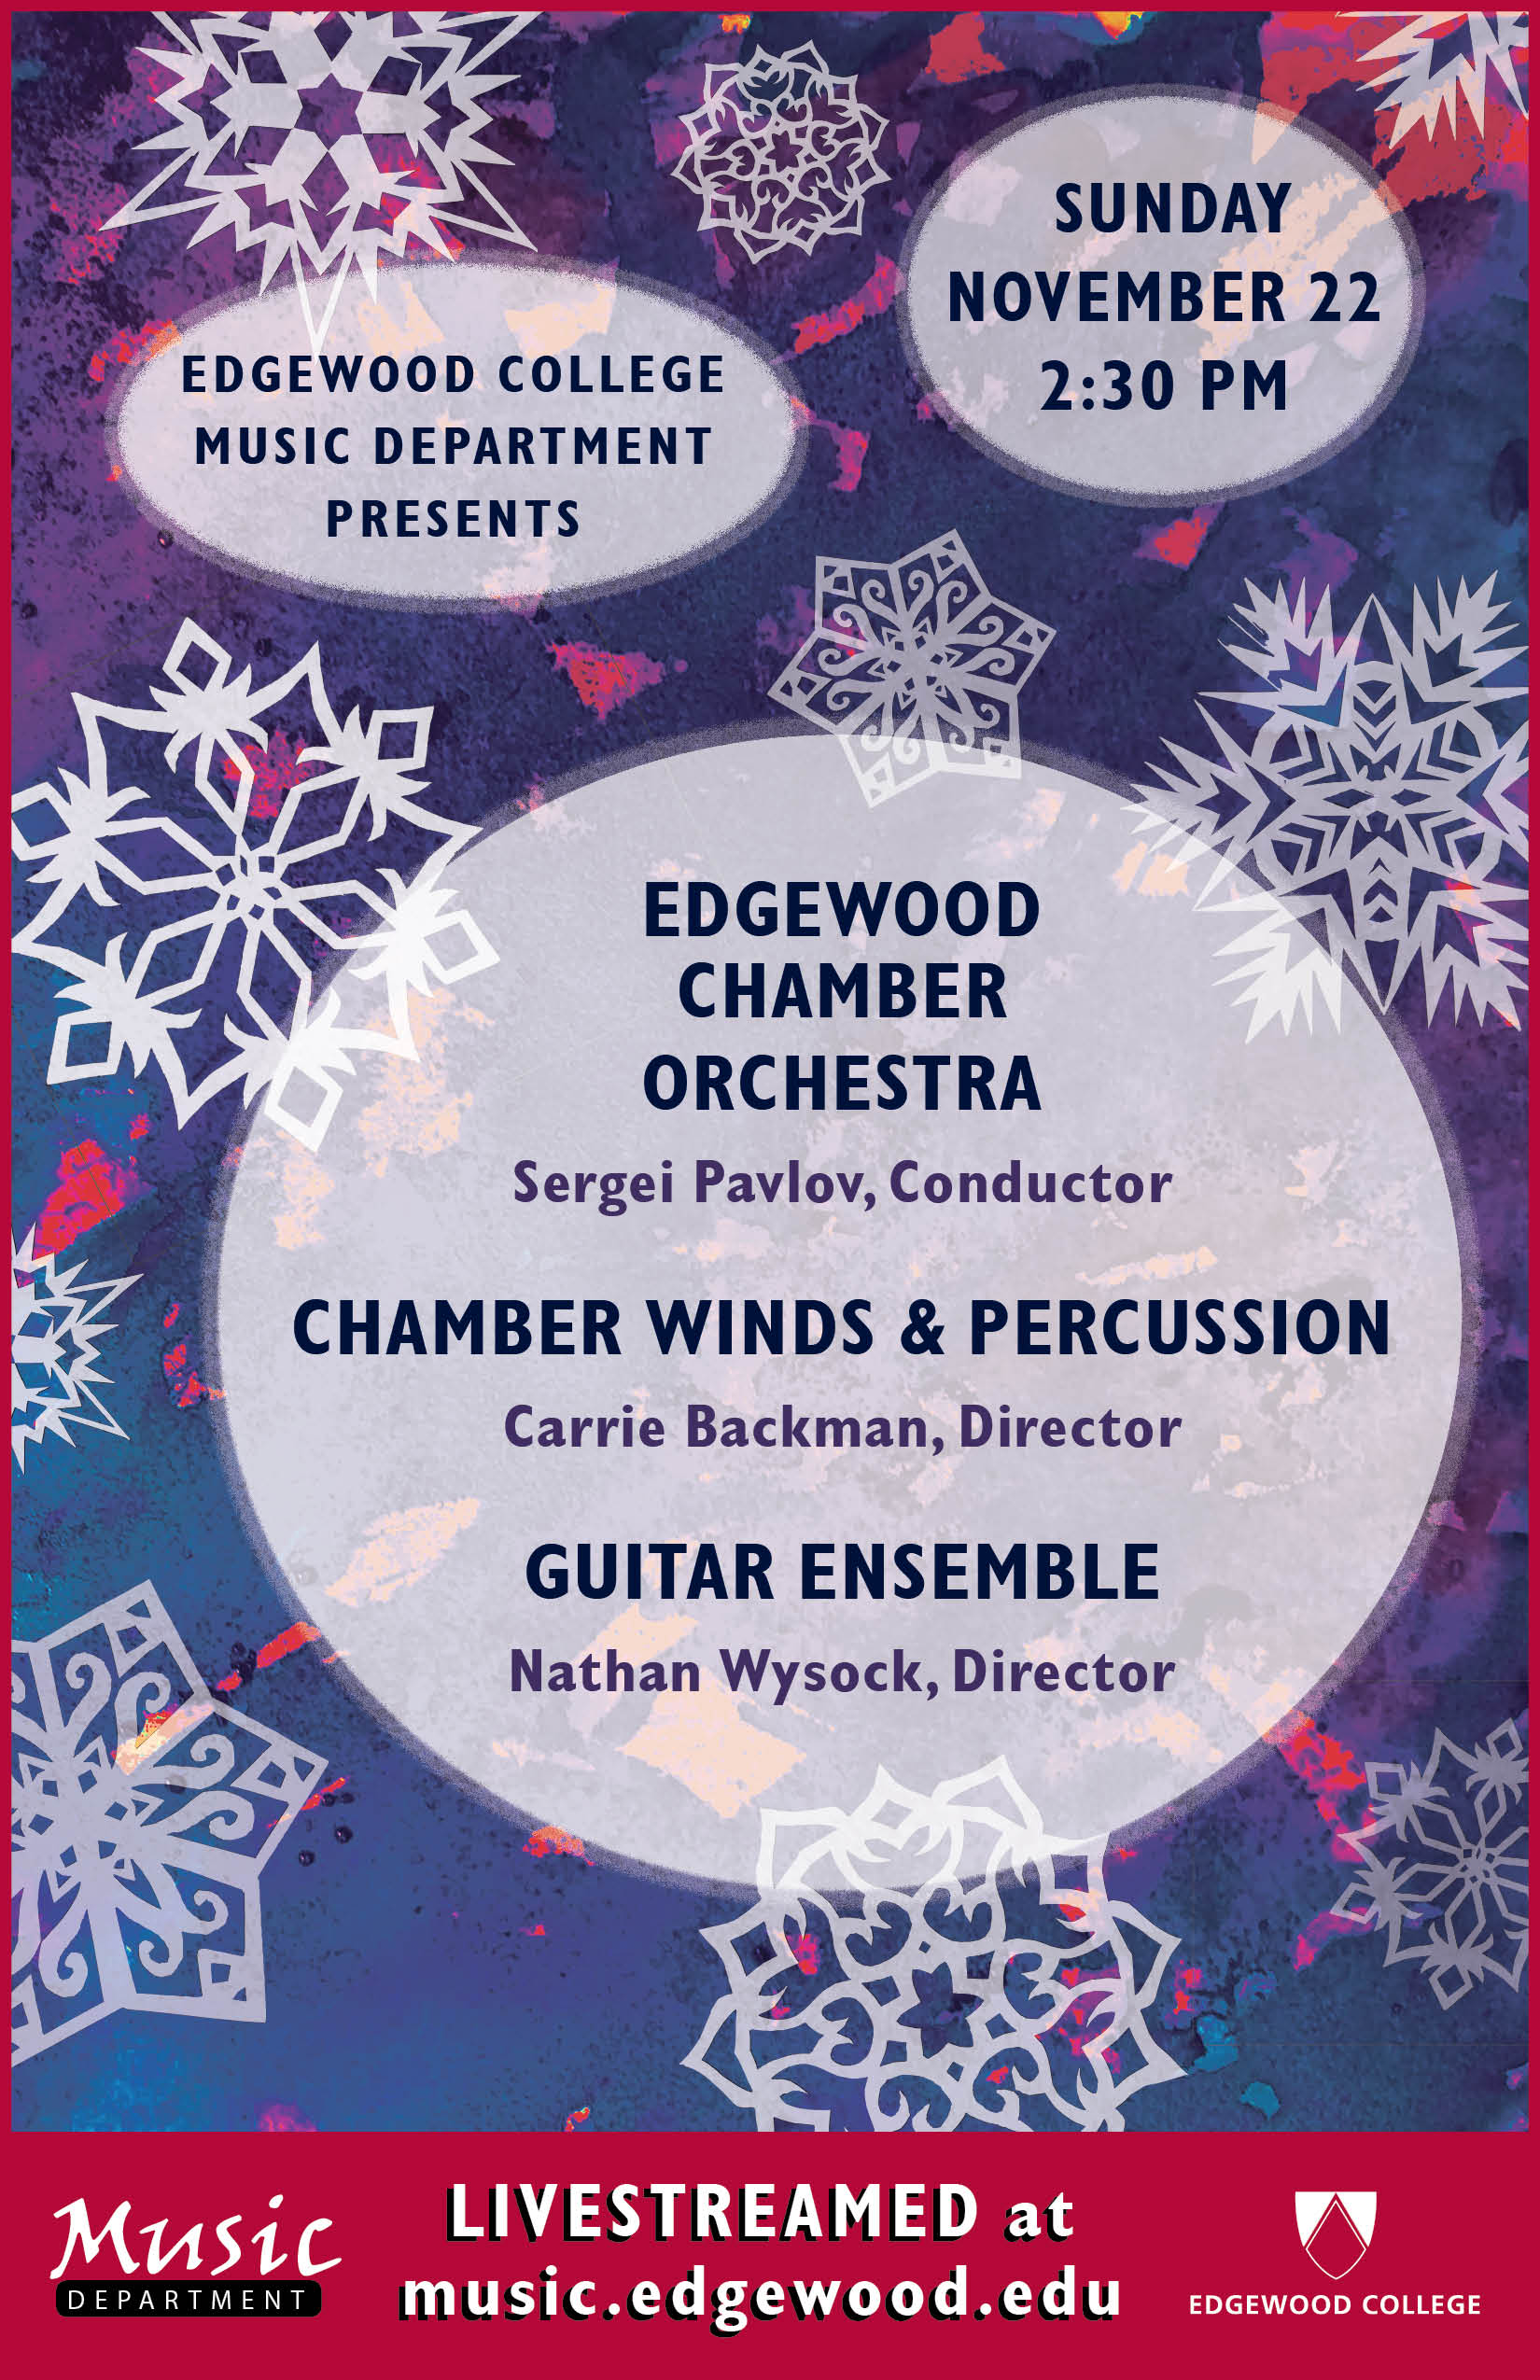 Edgewood College Music Department November 2020 Concert Poster